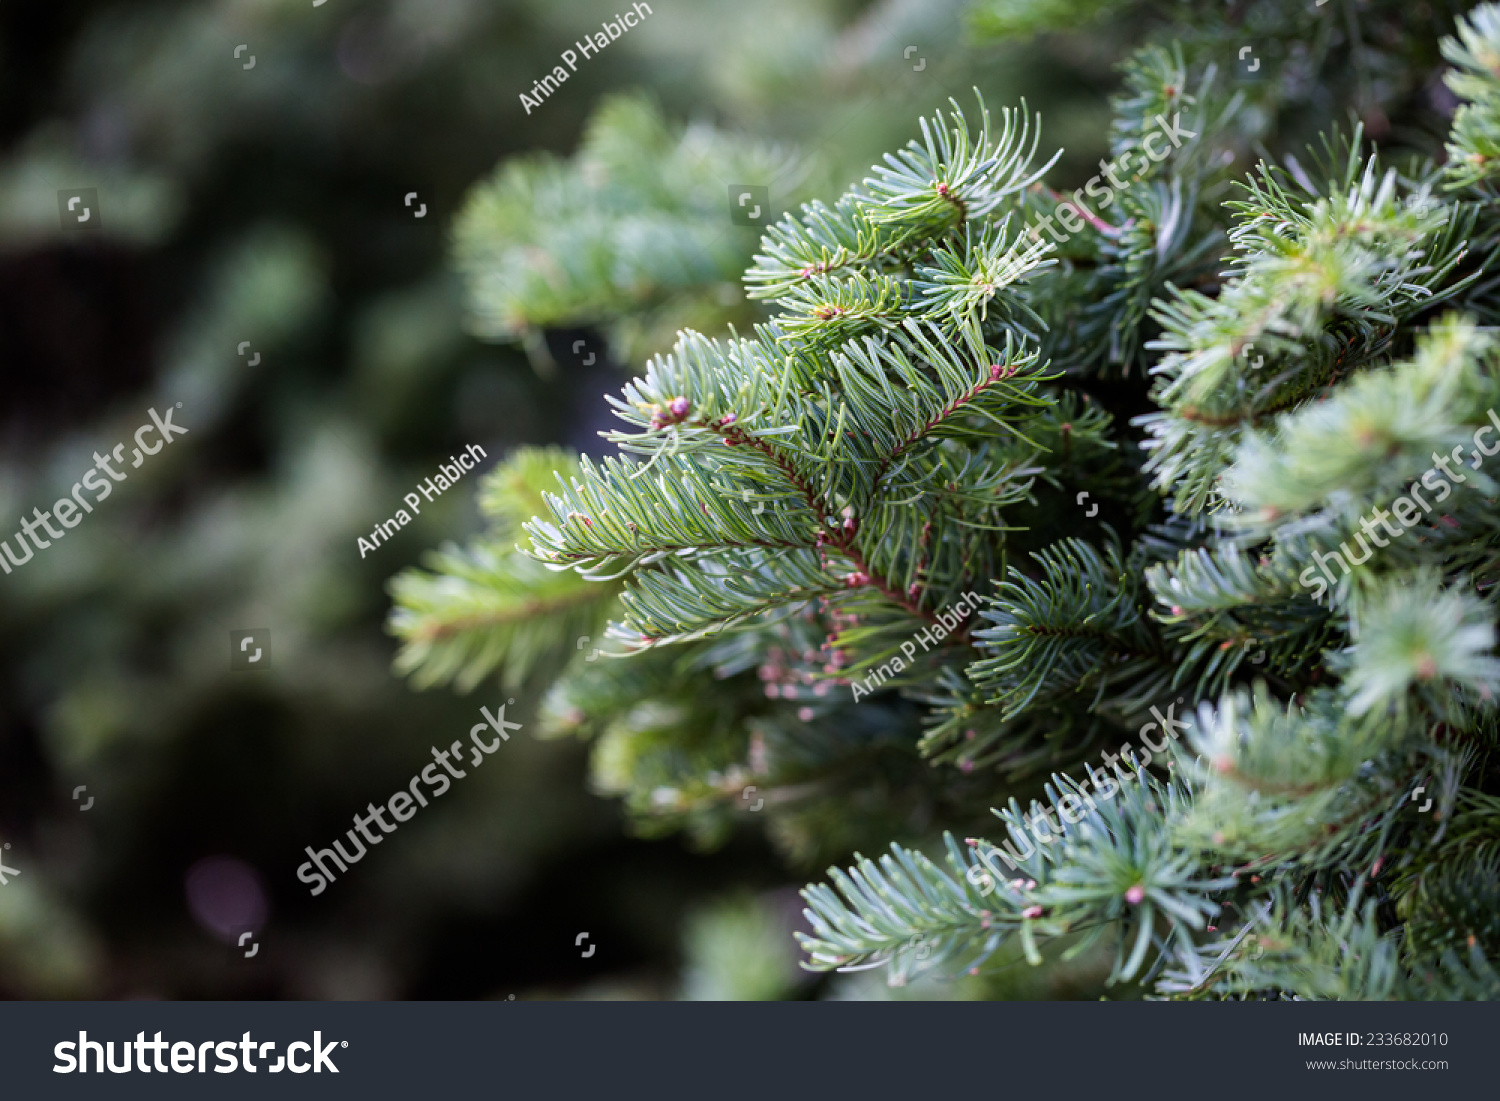 Beautiful Fresh Cut Christmas Trees Christmas Stock Photo Edit Now 233682010